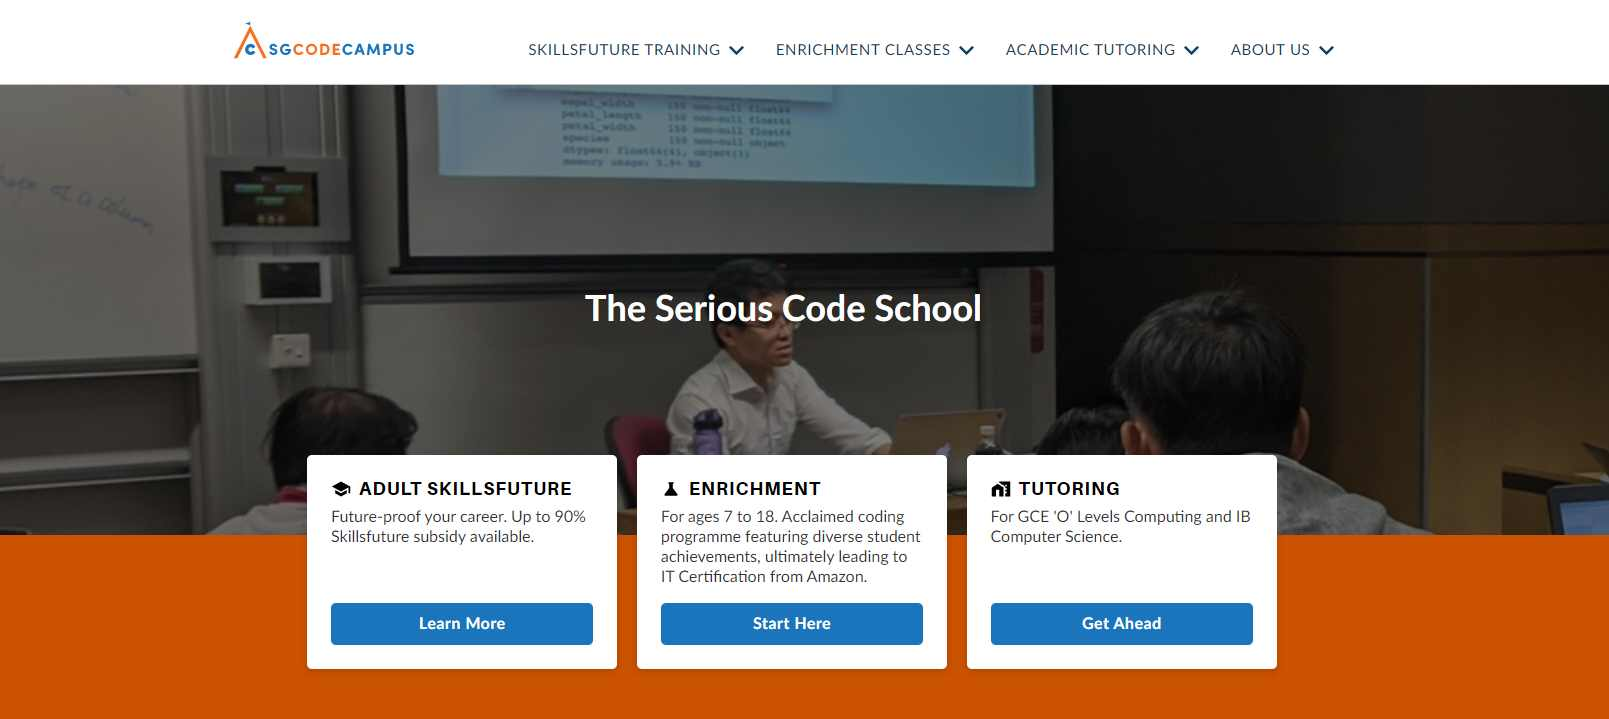 sg code campus Top Coding Courses for Kids in Singapore